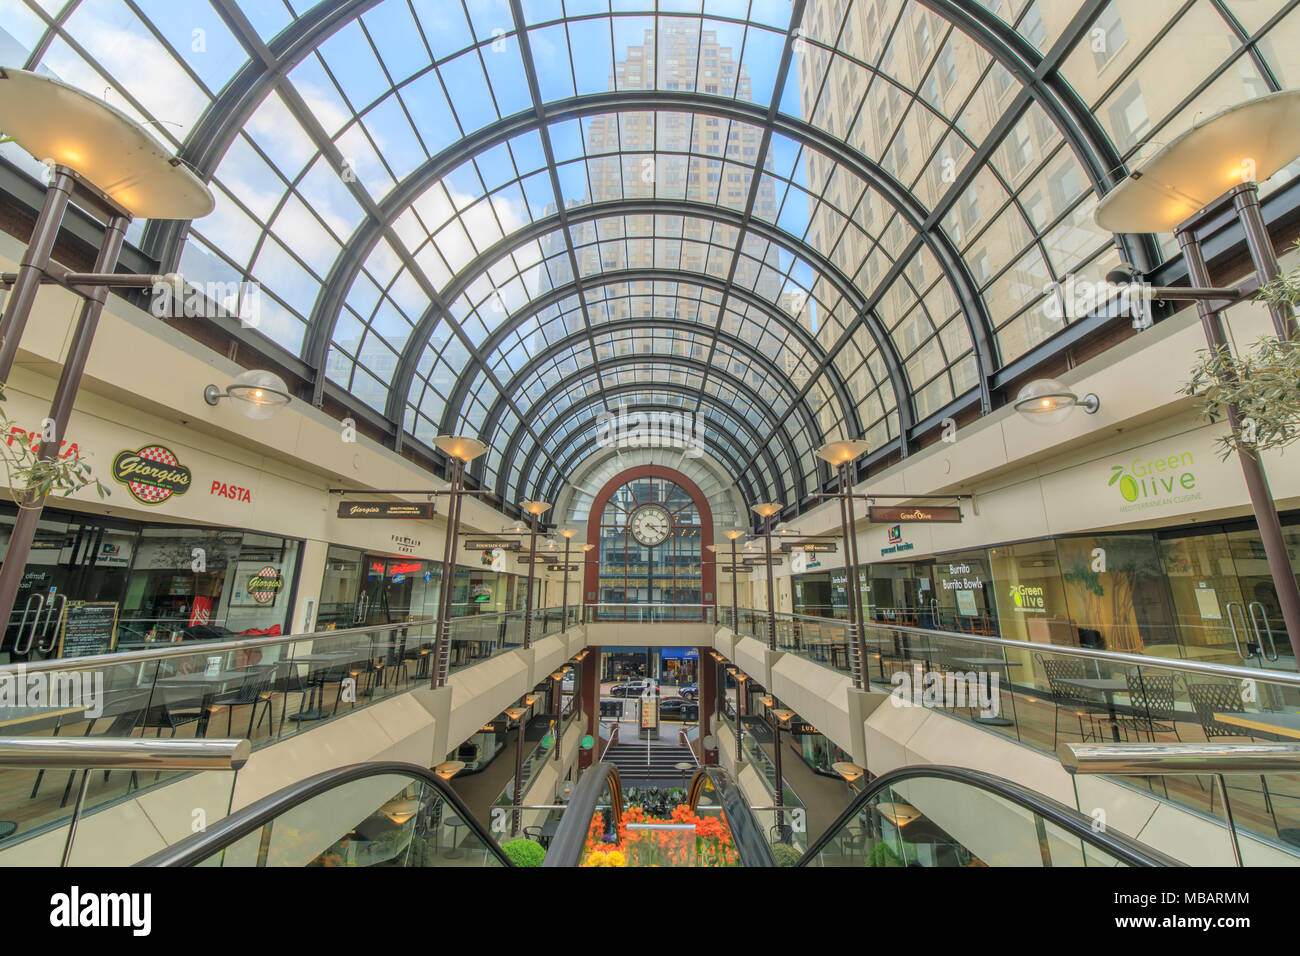 San Francisco, California - April 7, 2018: Interior of the Crocker Galleria Shopping Mall in the Financial District. - Stock Image